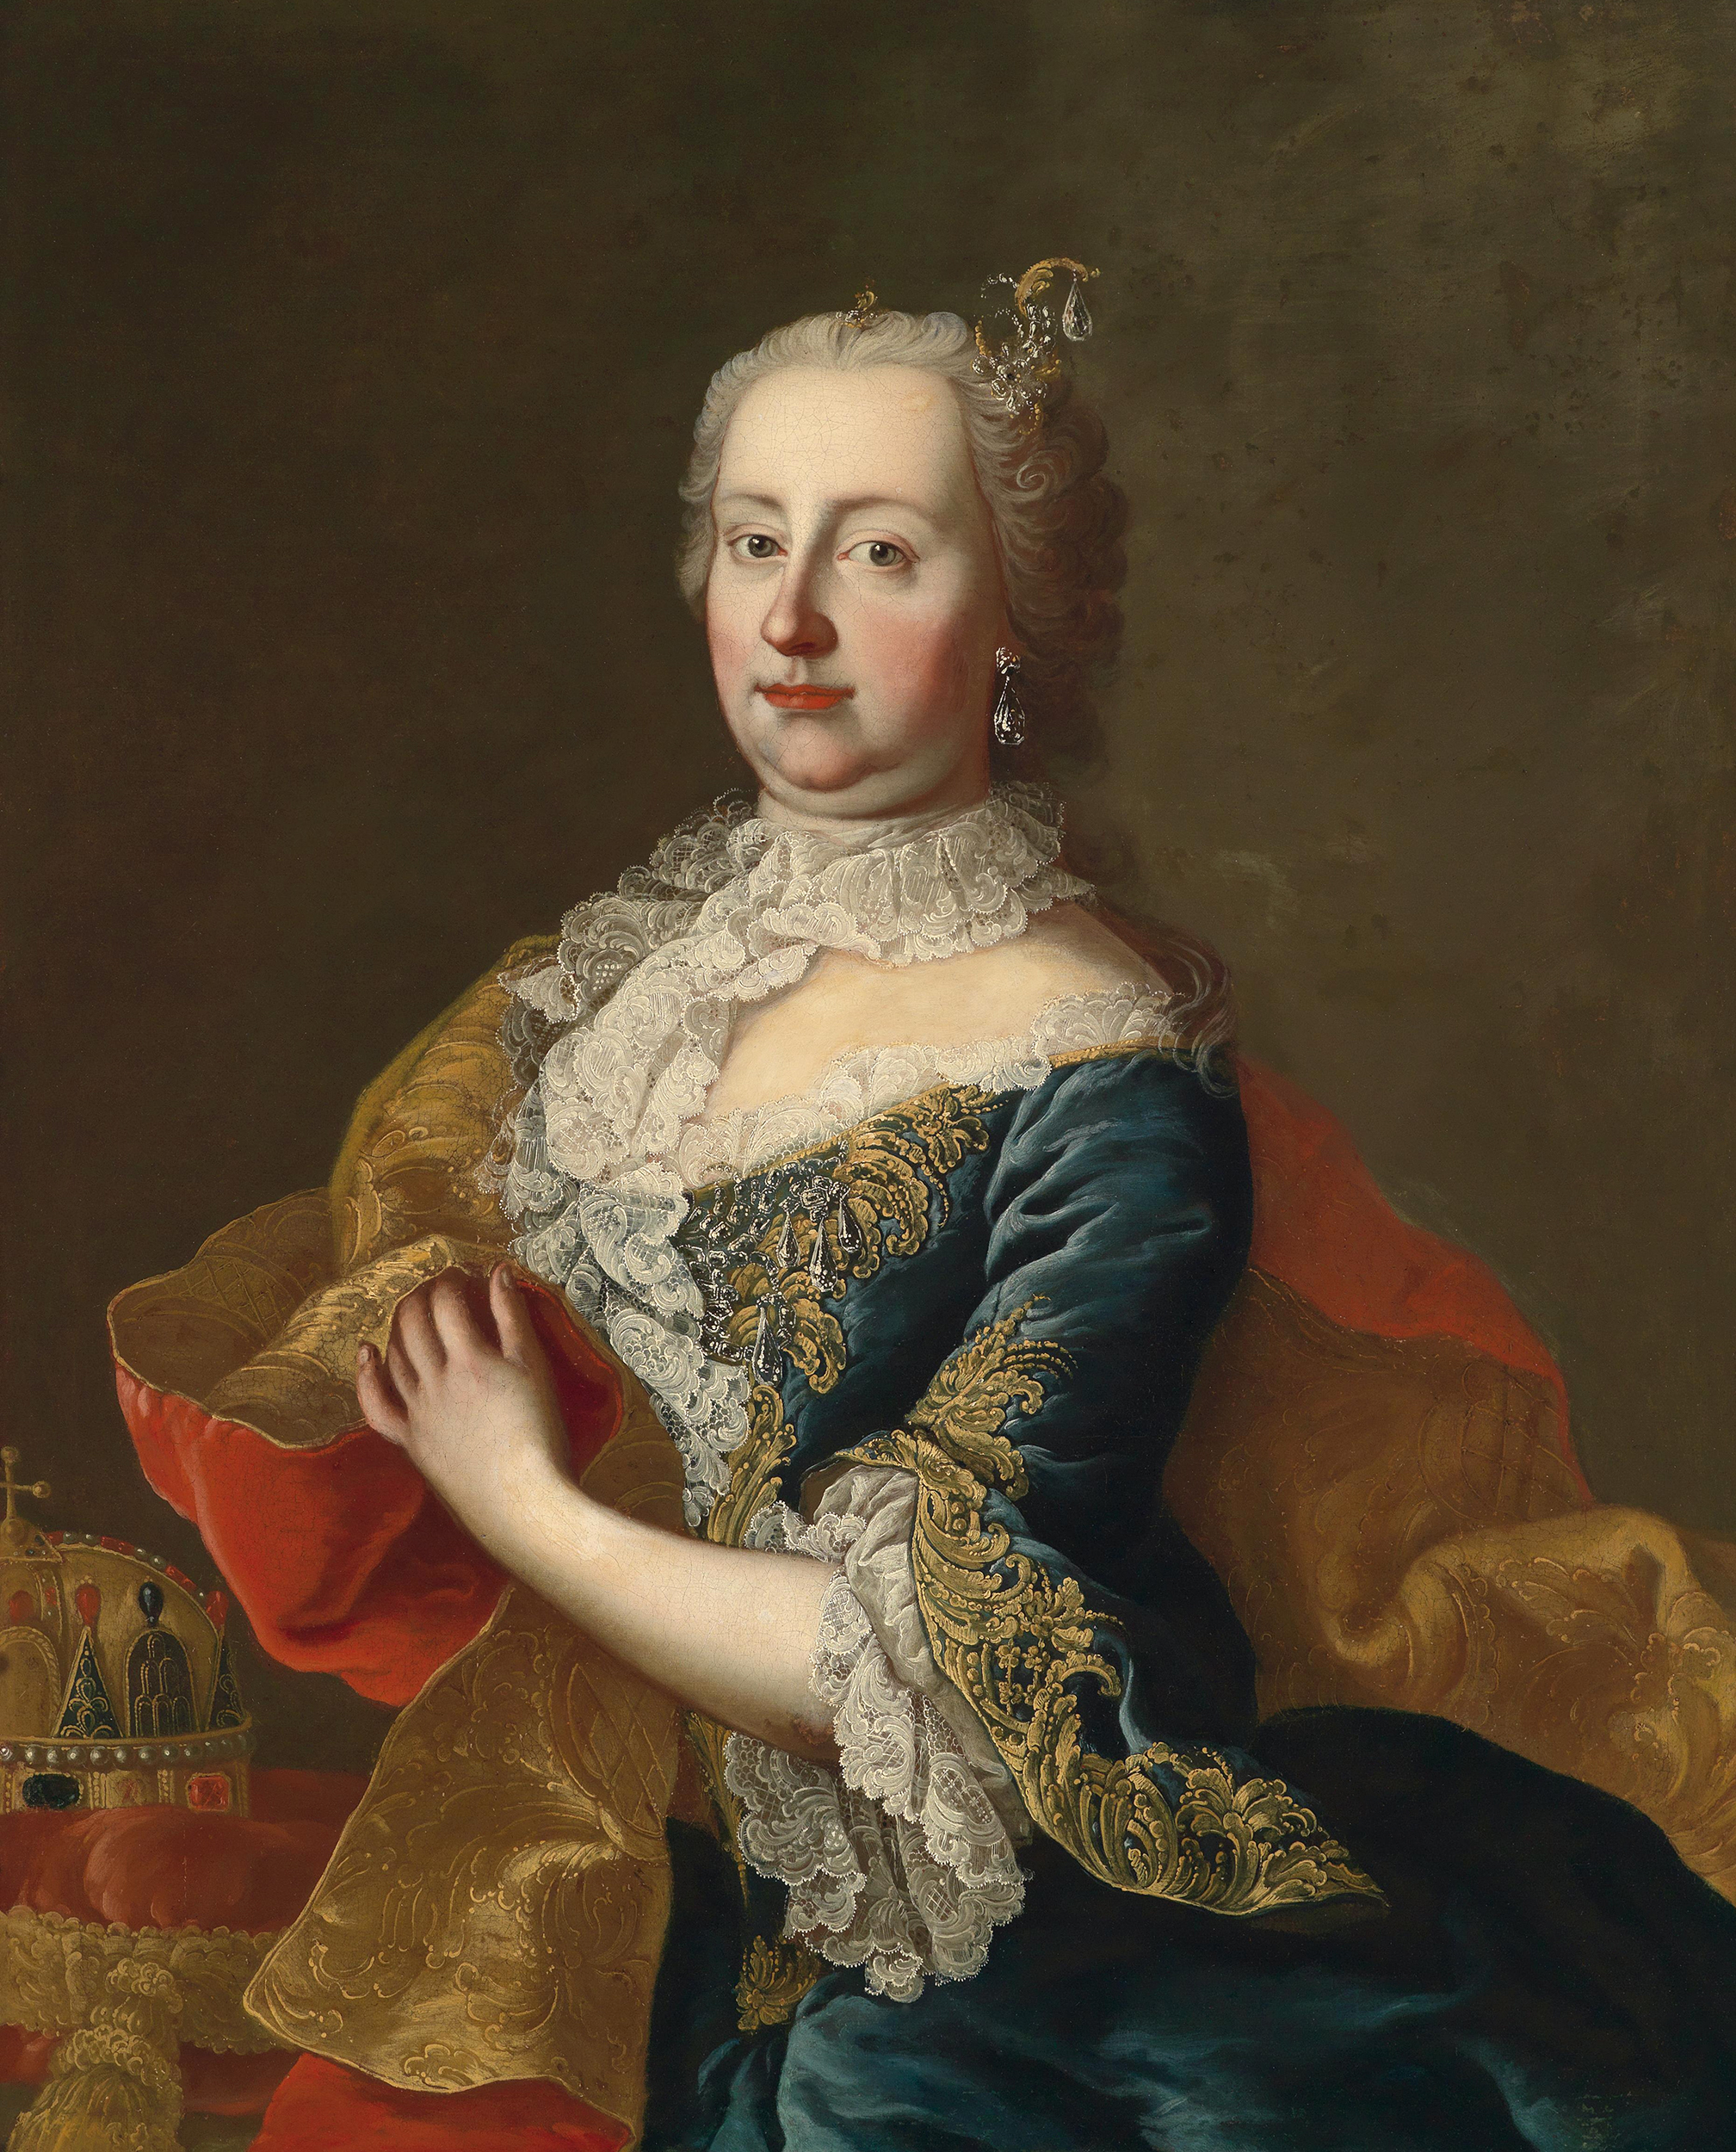 Portrait of Maria Theresa (1717-1780), Queen of Bohemia (1740-1741; 1743-1780), Queen of Hungary and Croatia, Archduchess of Austria, Duchess of Brabant, Limburg, Lothier, Luxembourg and Milan, Countess of Flanders,Hainaut and Namur (1740-1780), Empress consort of the Holy Roman Empire (1745-1765) | Portraits of Kings